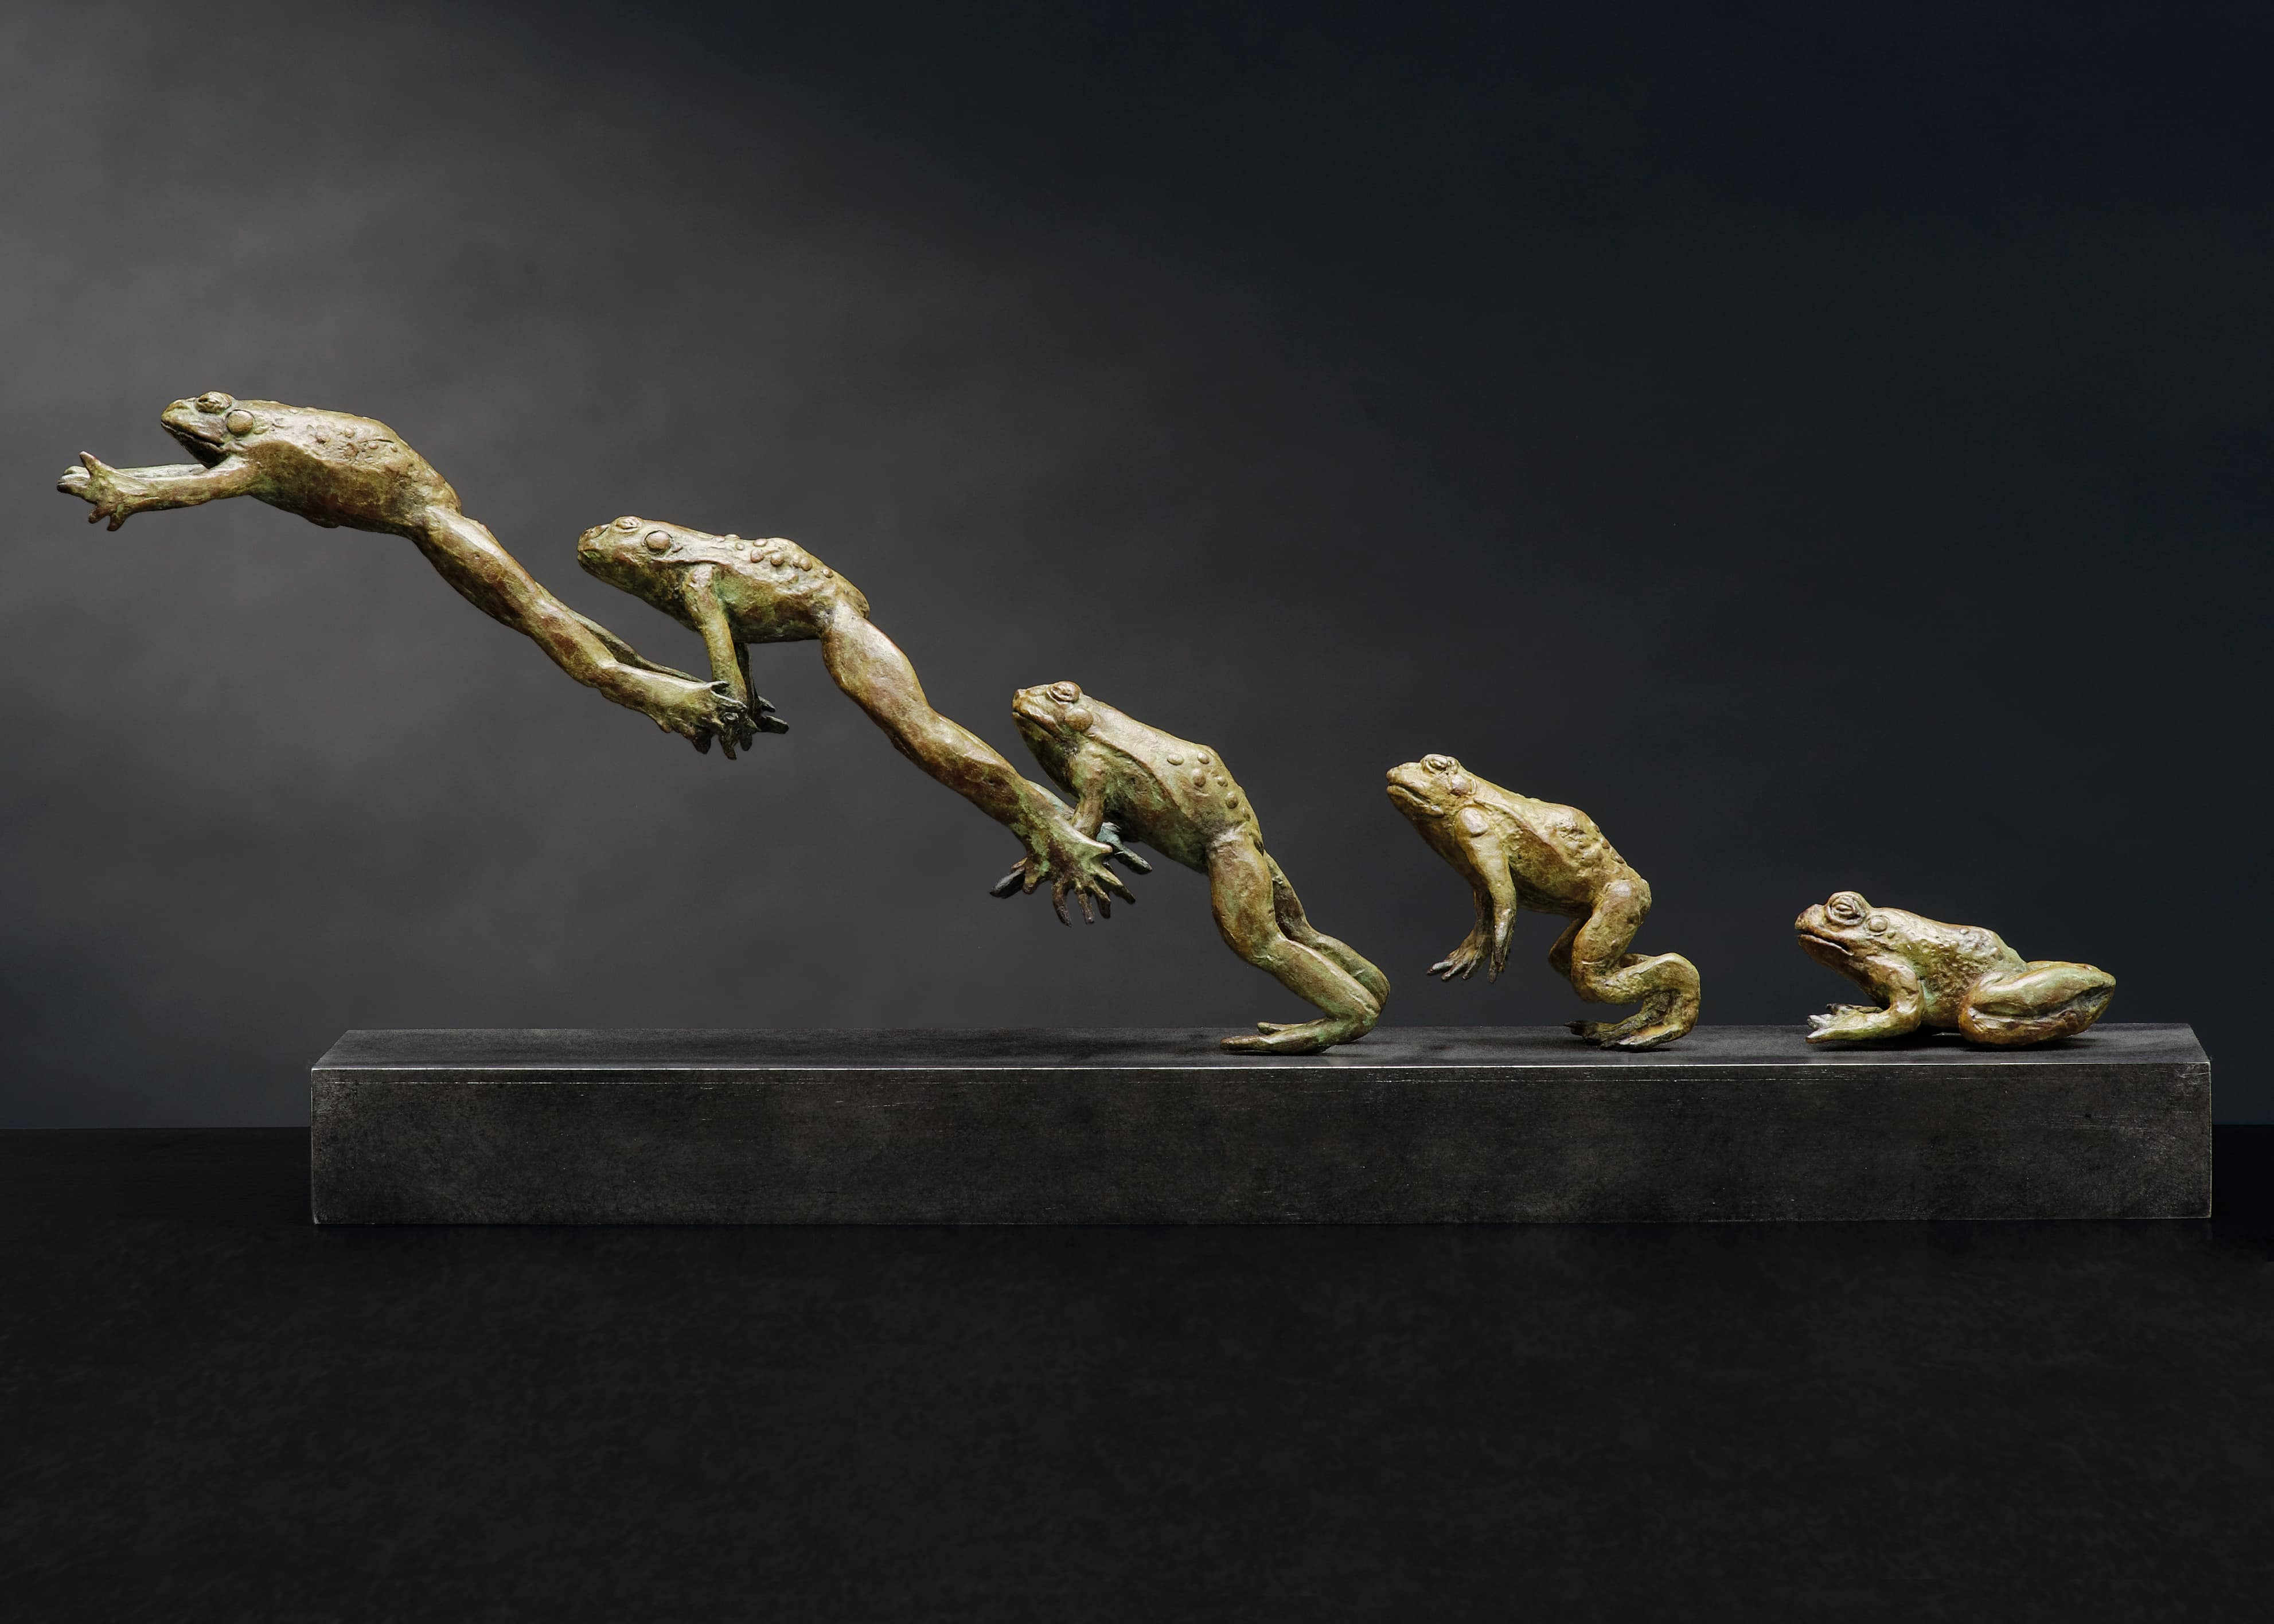 Bruce Little, bronze sculpture of a frog in jumping action